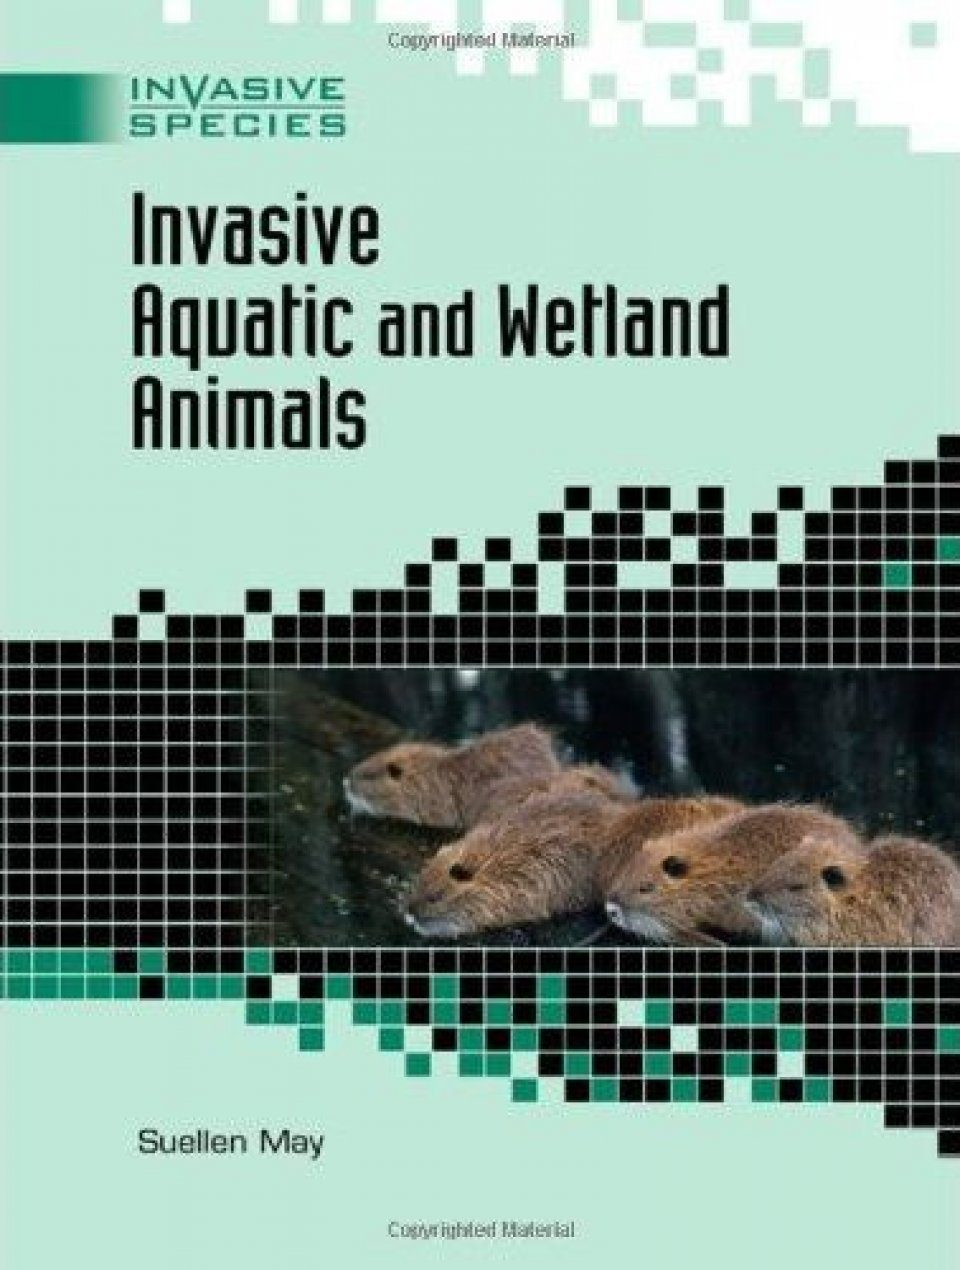 Invasive Aquatic and Wetland Animals